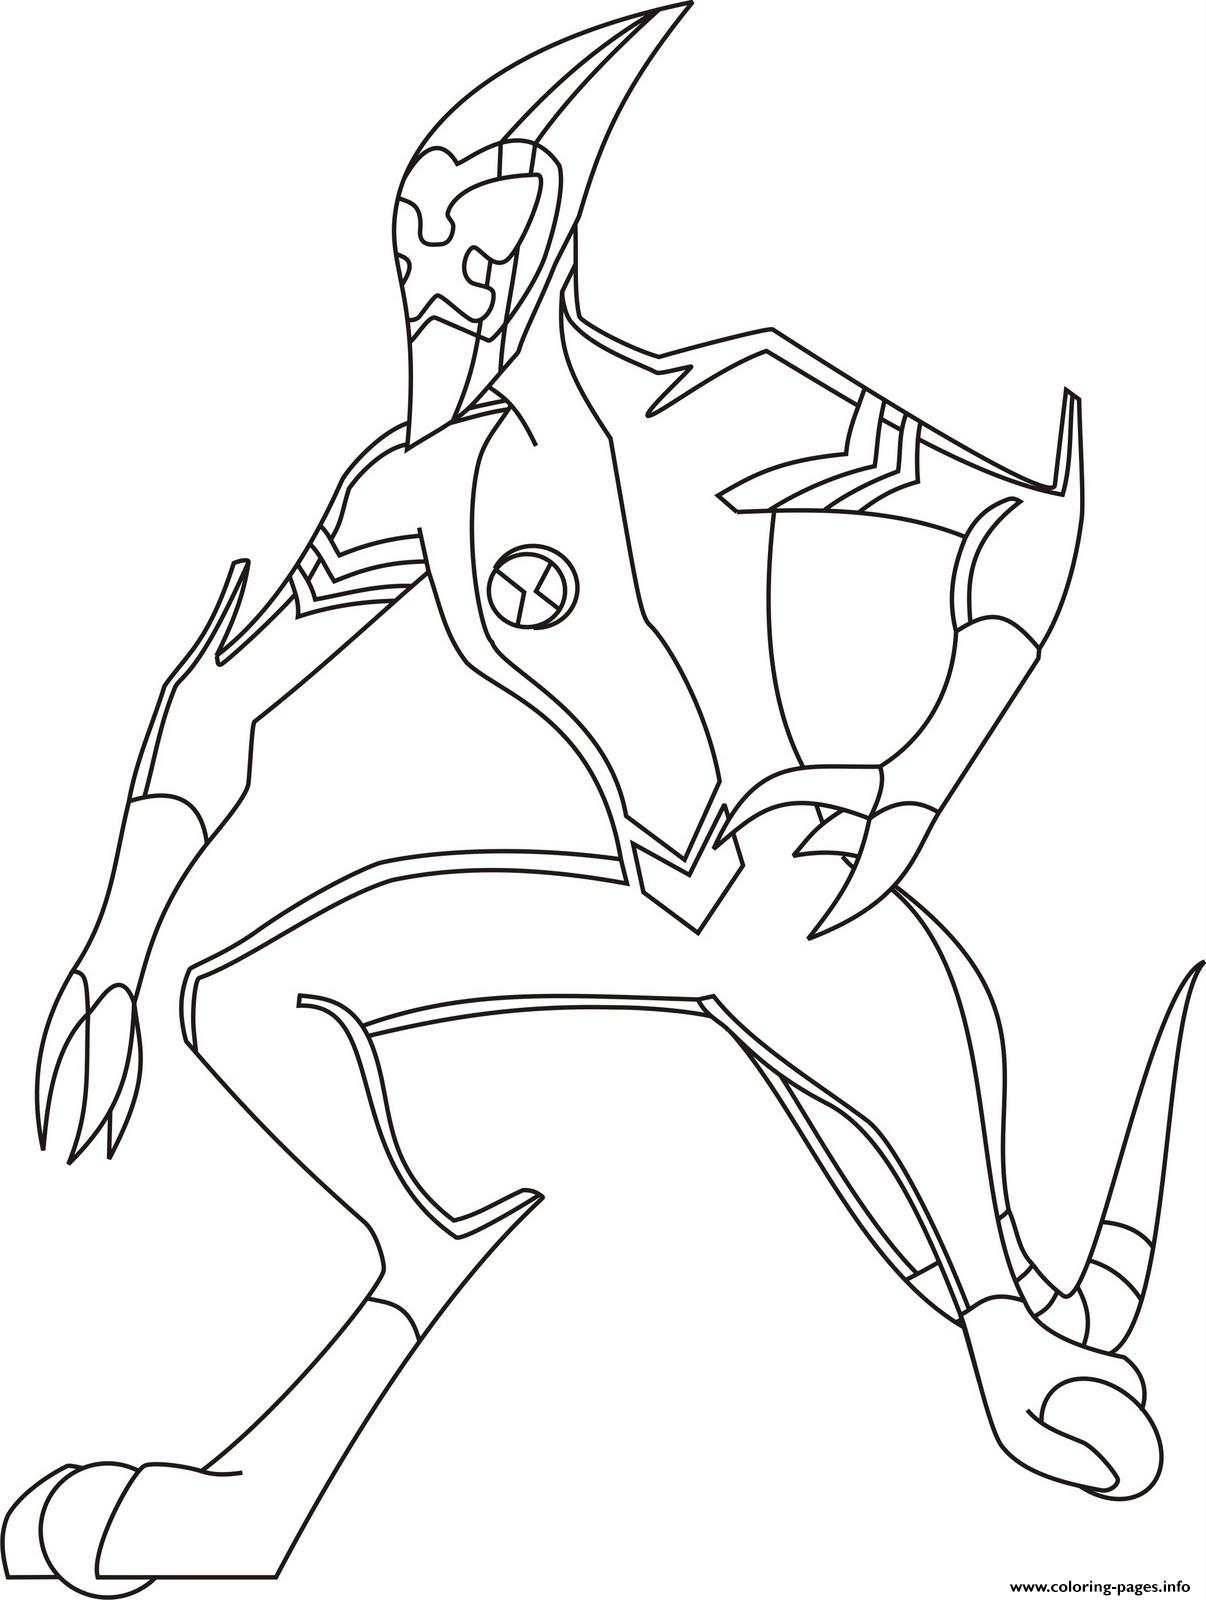 Dessin Ben 10 99 Coloring Pages Printable Benten Coloring Pages